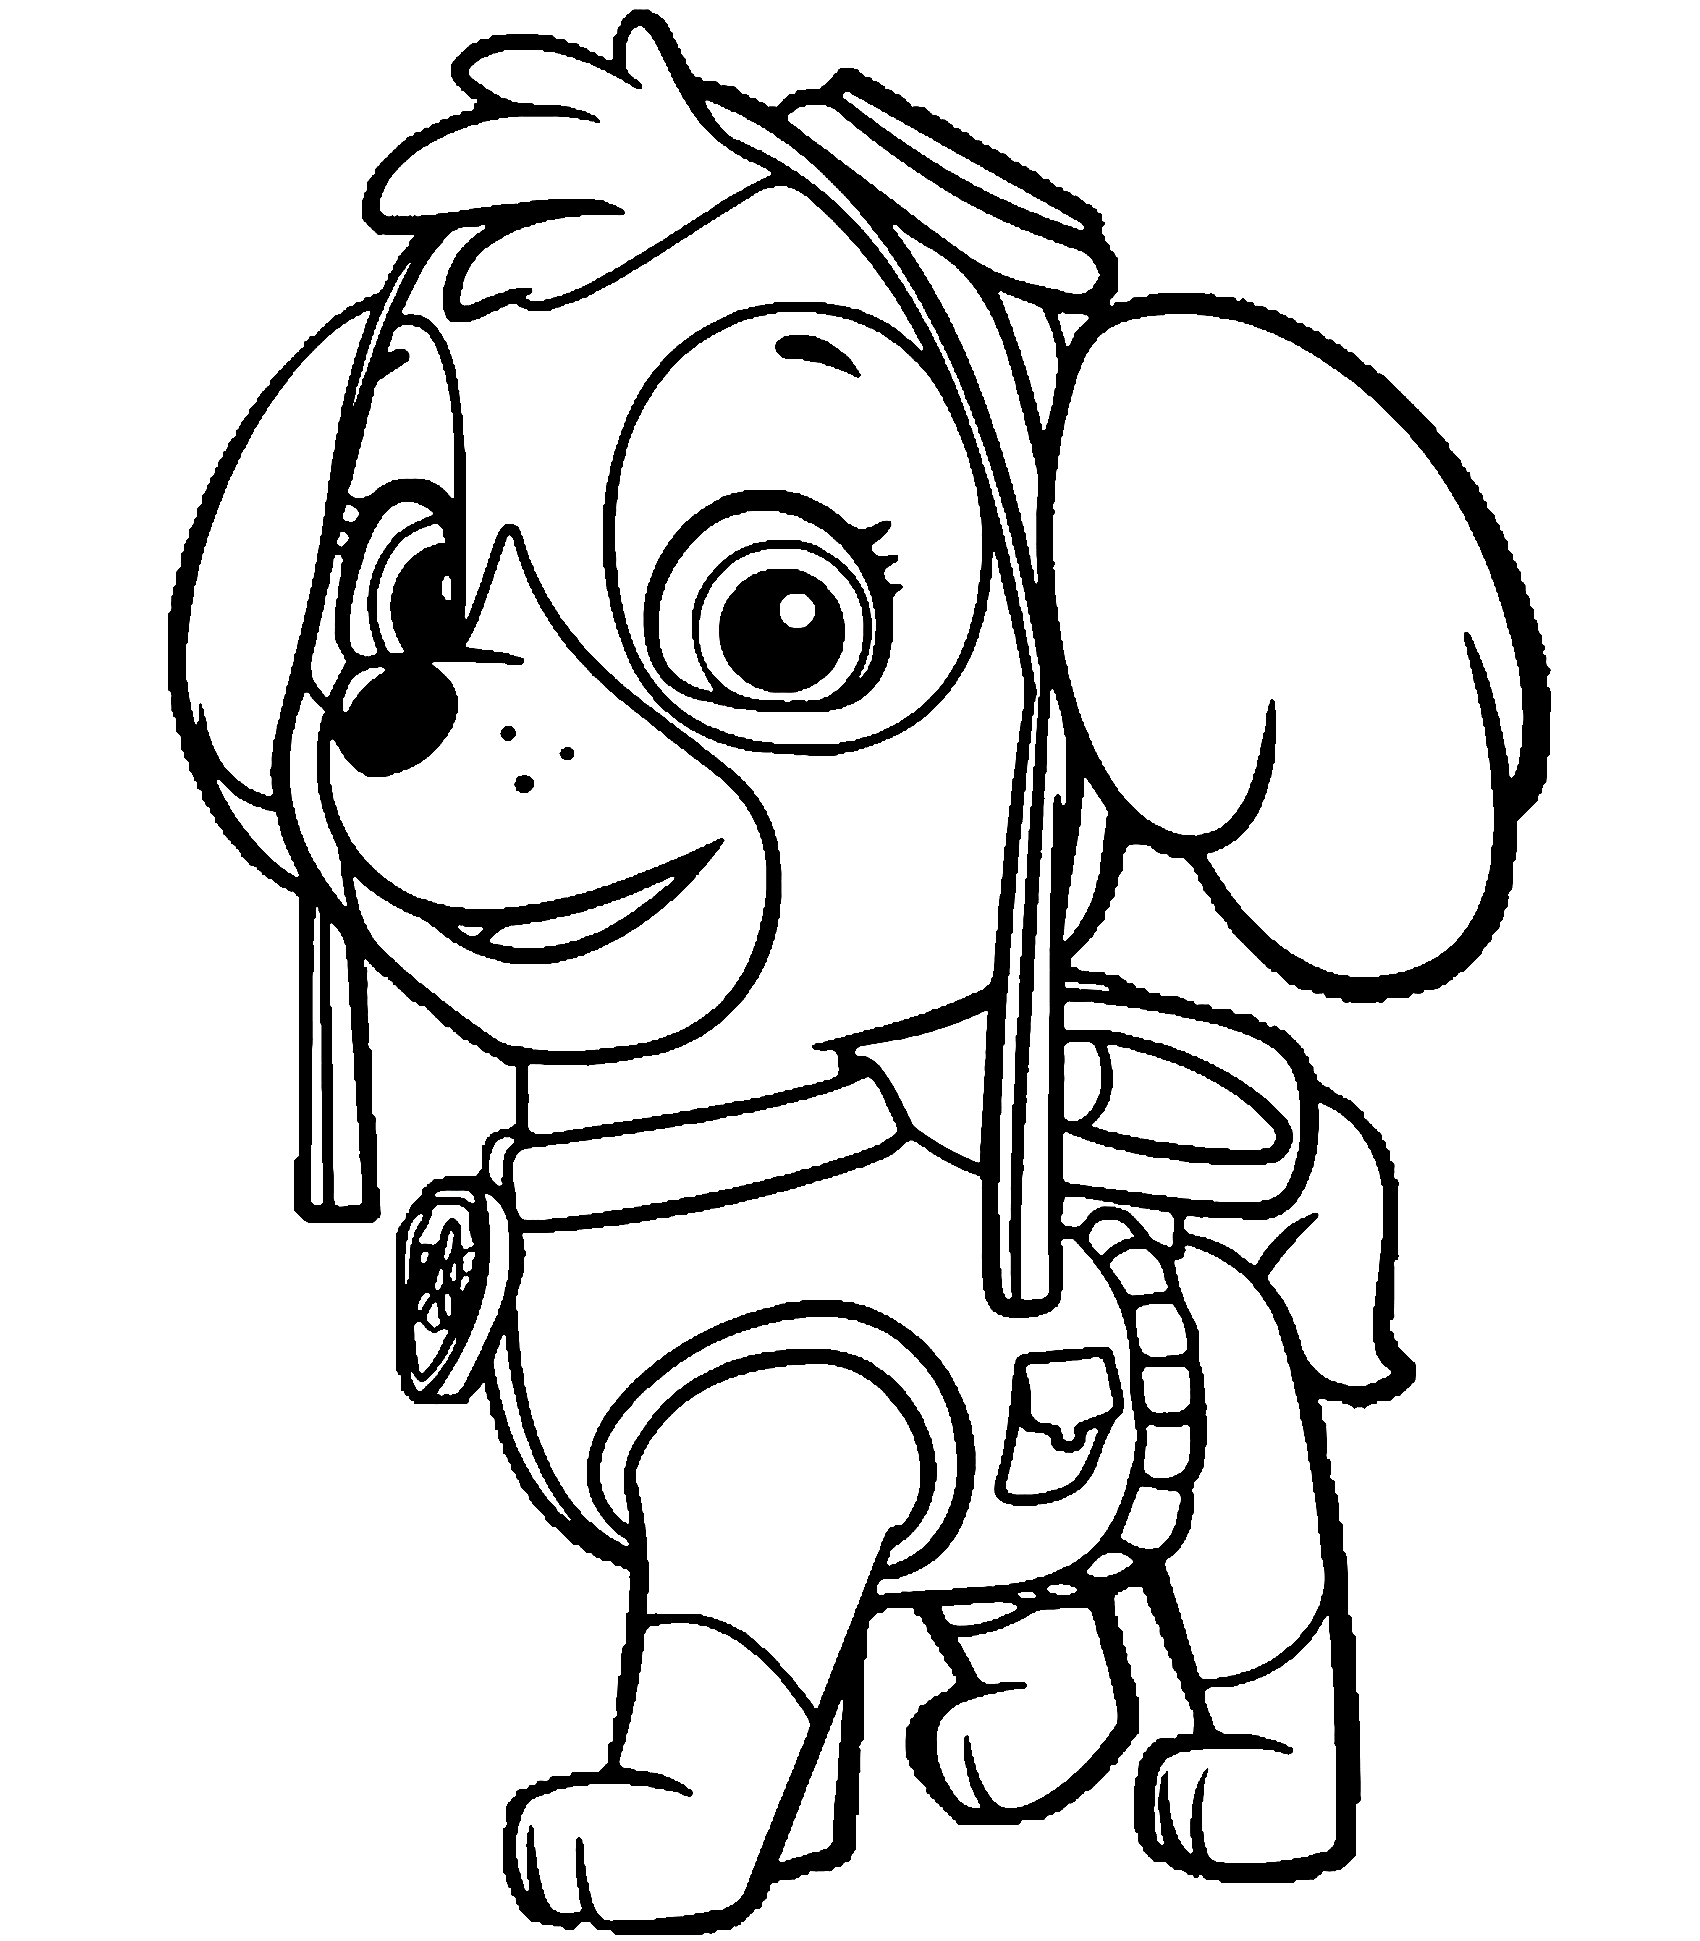 Skye Paw Patrol Coloring Page for Girls